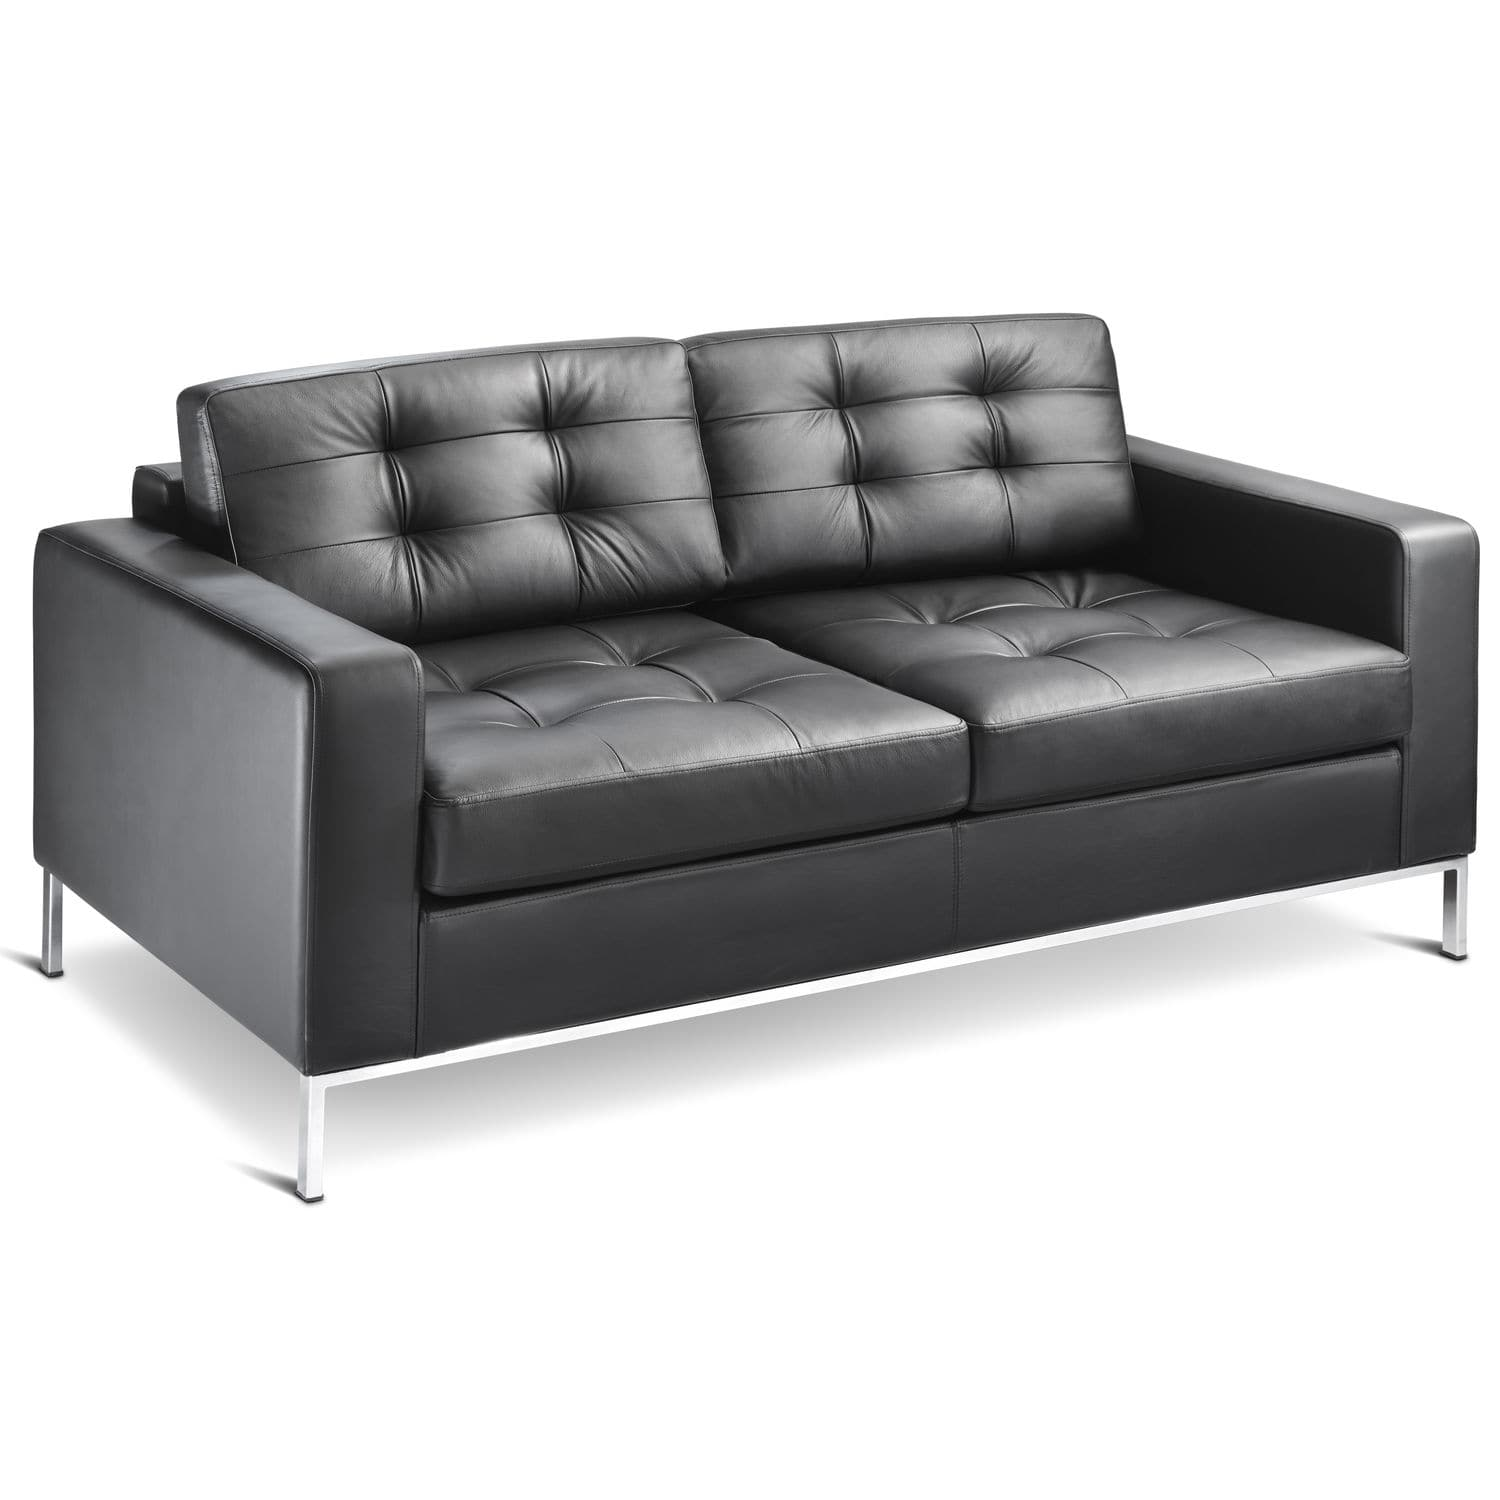 Minimalist Design Sofa Leather 2 Person 3 Seater Check By High